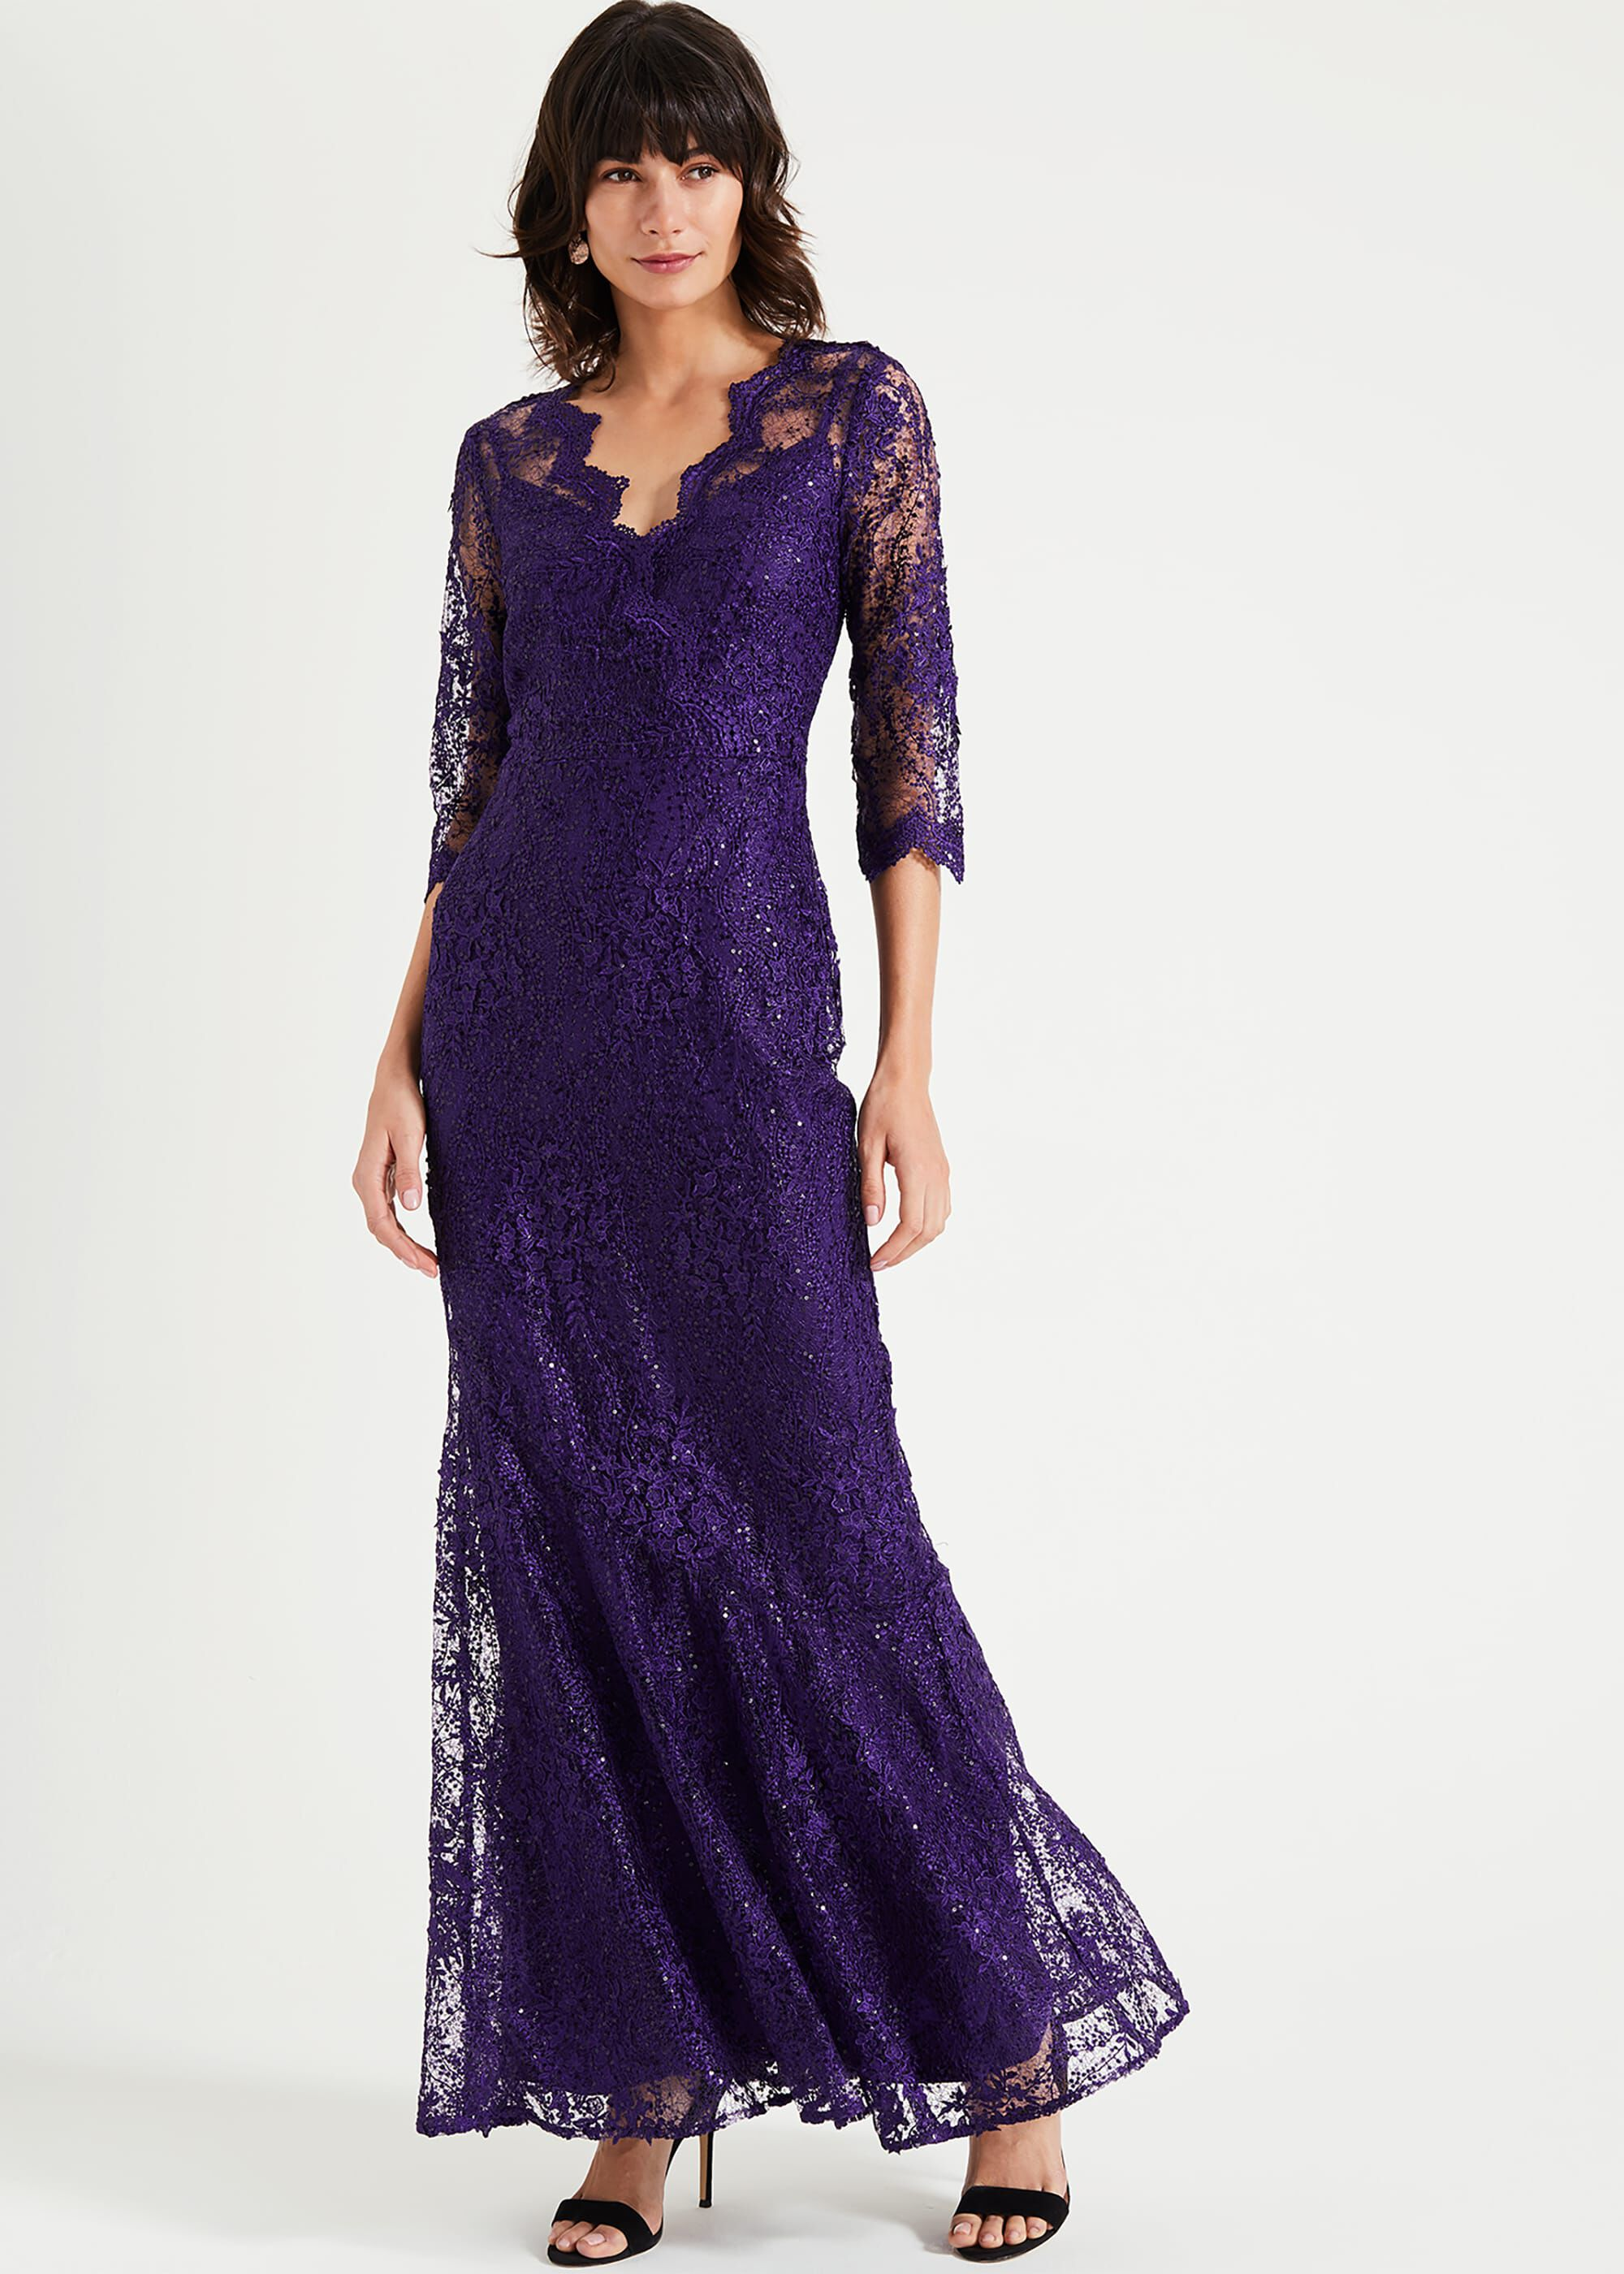 Phase Eight Grace Lace Maxi Dress, Purple, Maxi, Occasion Dress